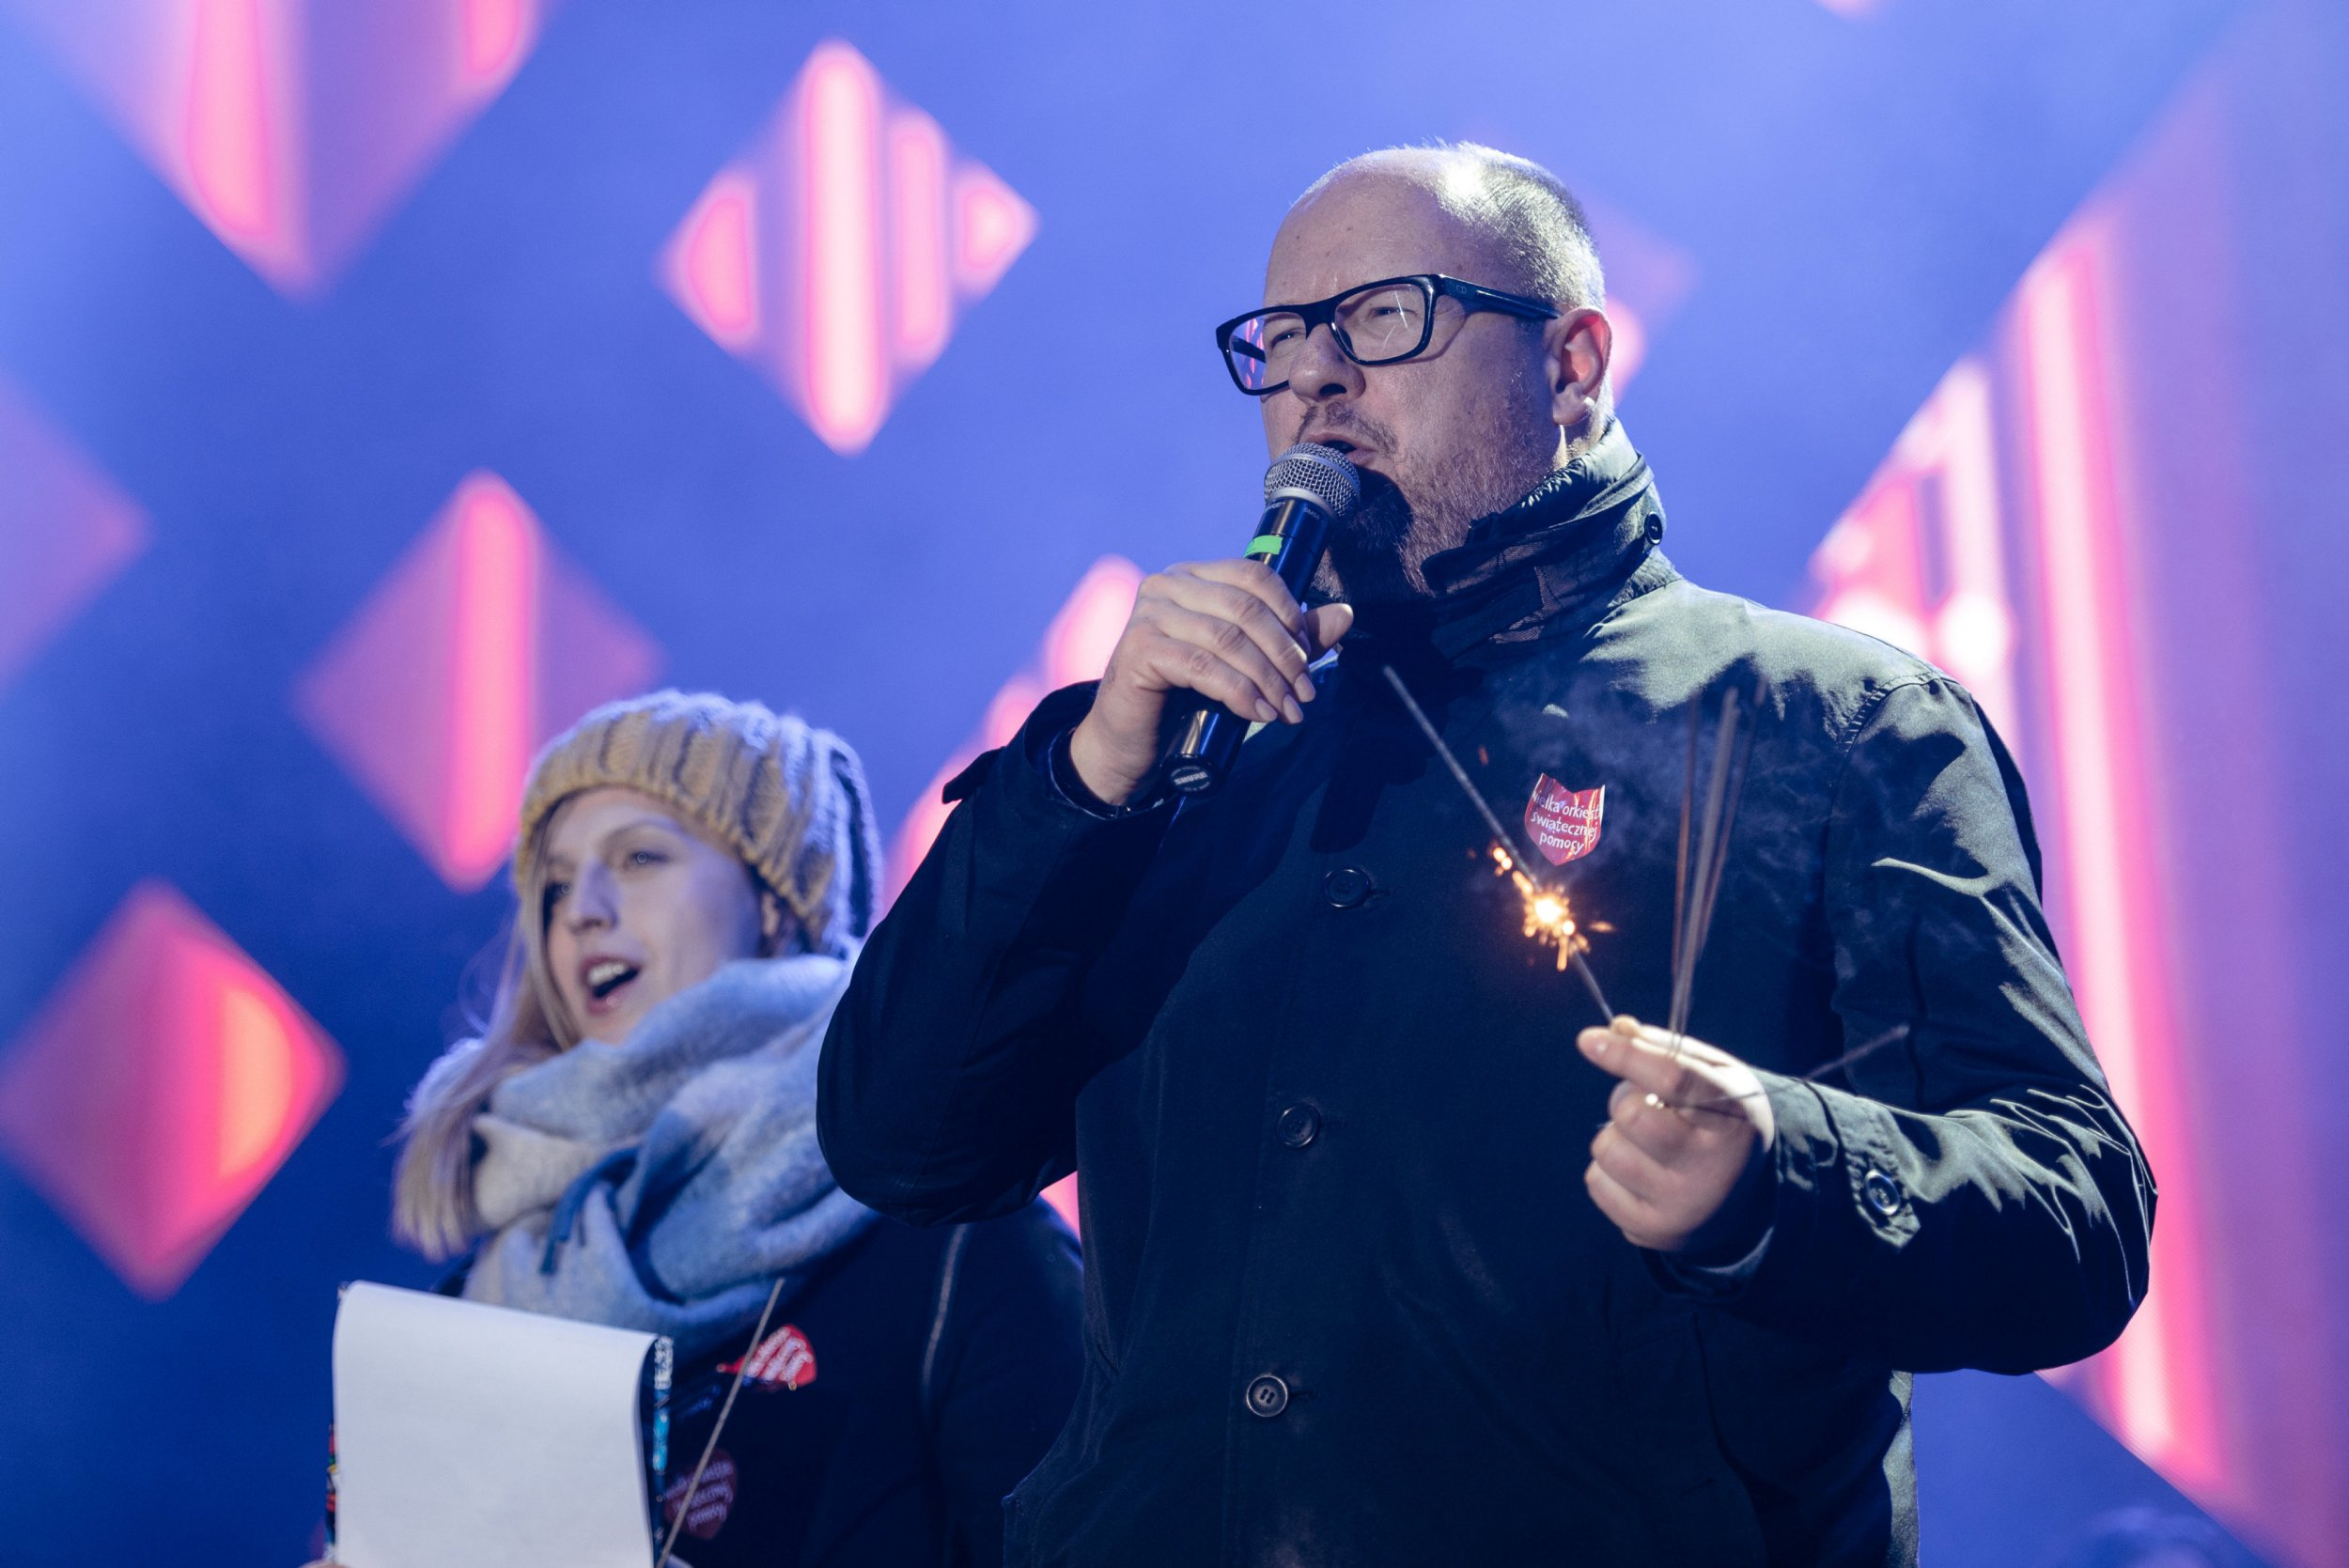 Gdansk's Mayor Pawel Adamowicz speaks during the 27th Grand Finale of the Great Orchestra of Christmas Charity in Gdansk, Poland January 13, 2019. Agencja Gazeta/Bartosz Banka via REUTERS ATTENTION EDITORS - THIS IMAGE WAS PROVIDED BY A THIRD PARTY. POLAND OUT. NO COMMERCIAL OR EDITORIAL SALES IN POLAND.